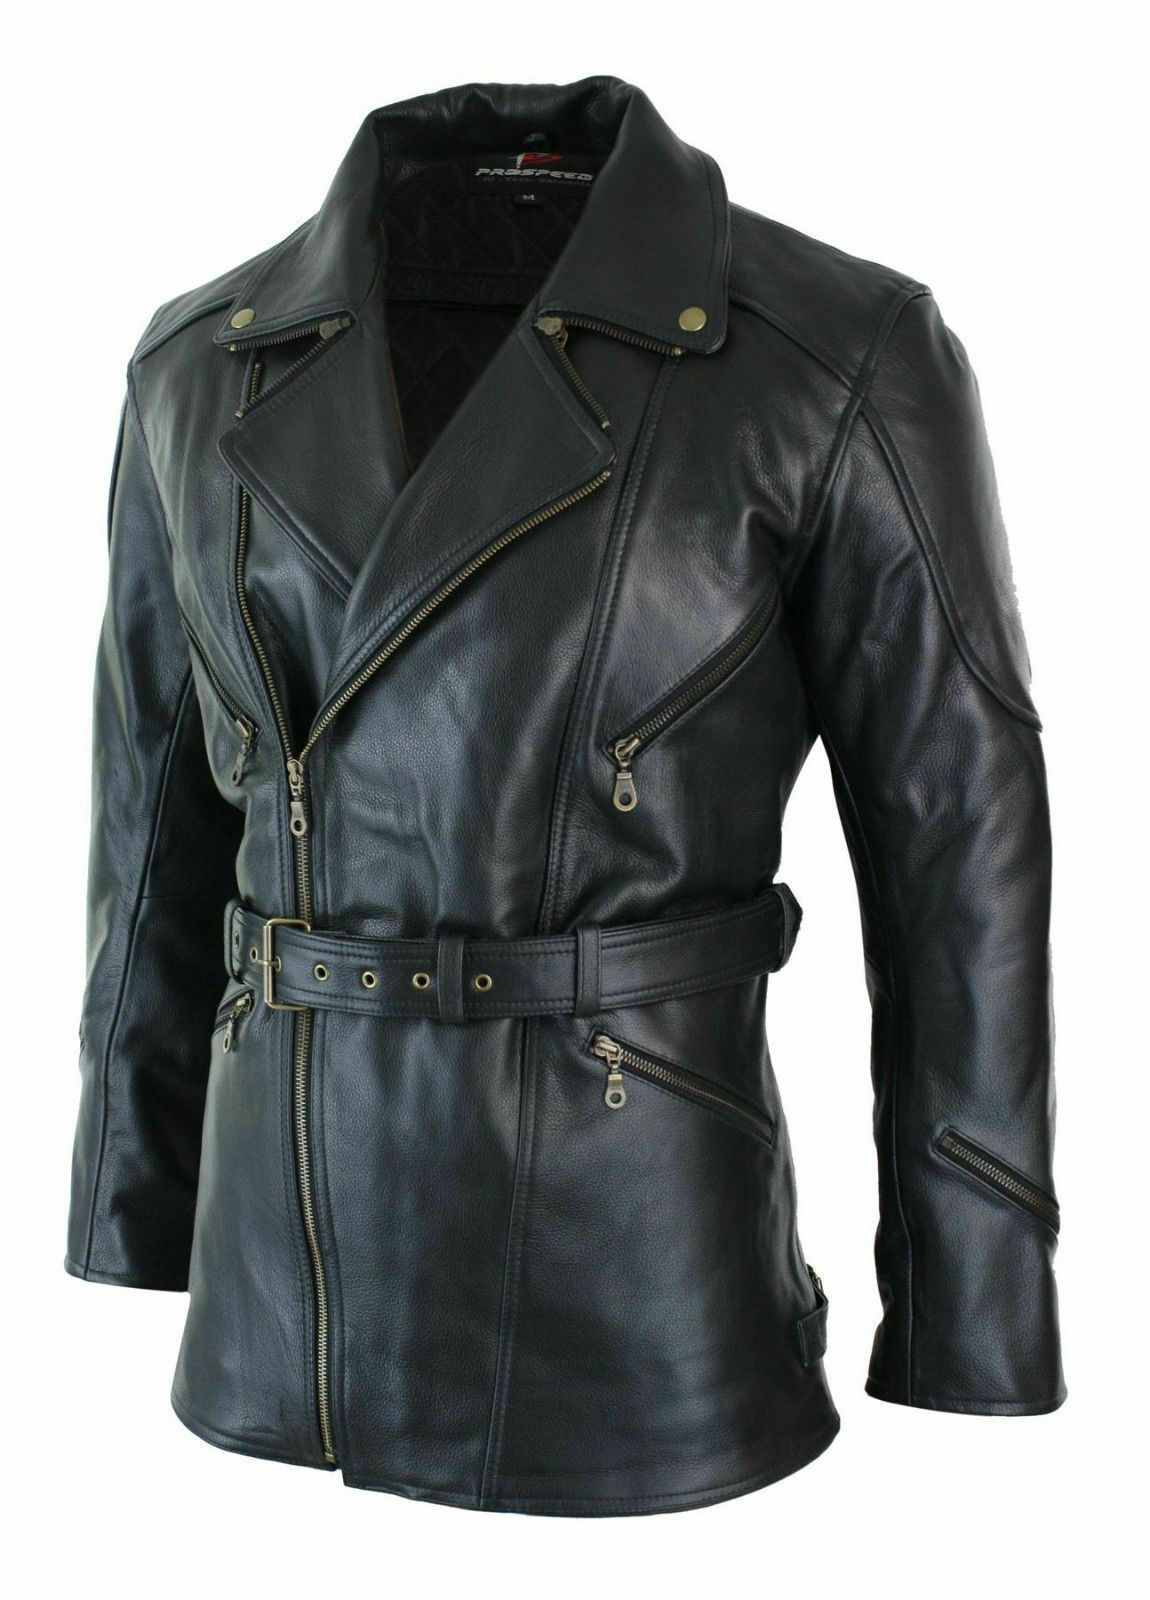 1f1ca459c Nfleather Leather Jacket: 22 customer reviews and 28 listings